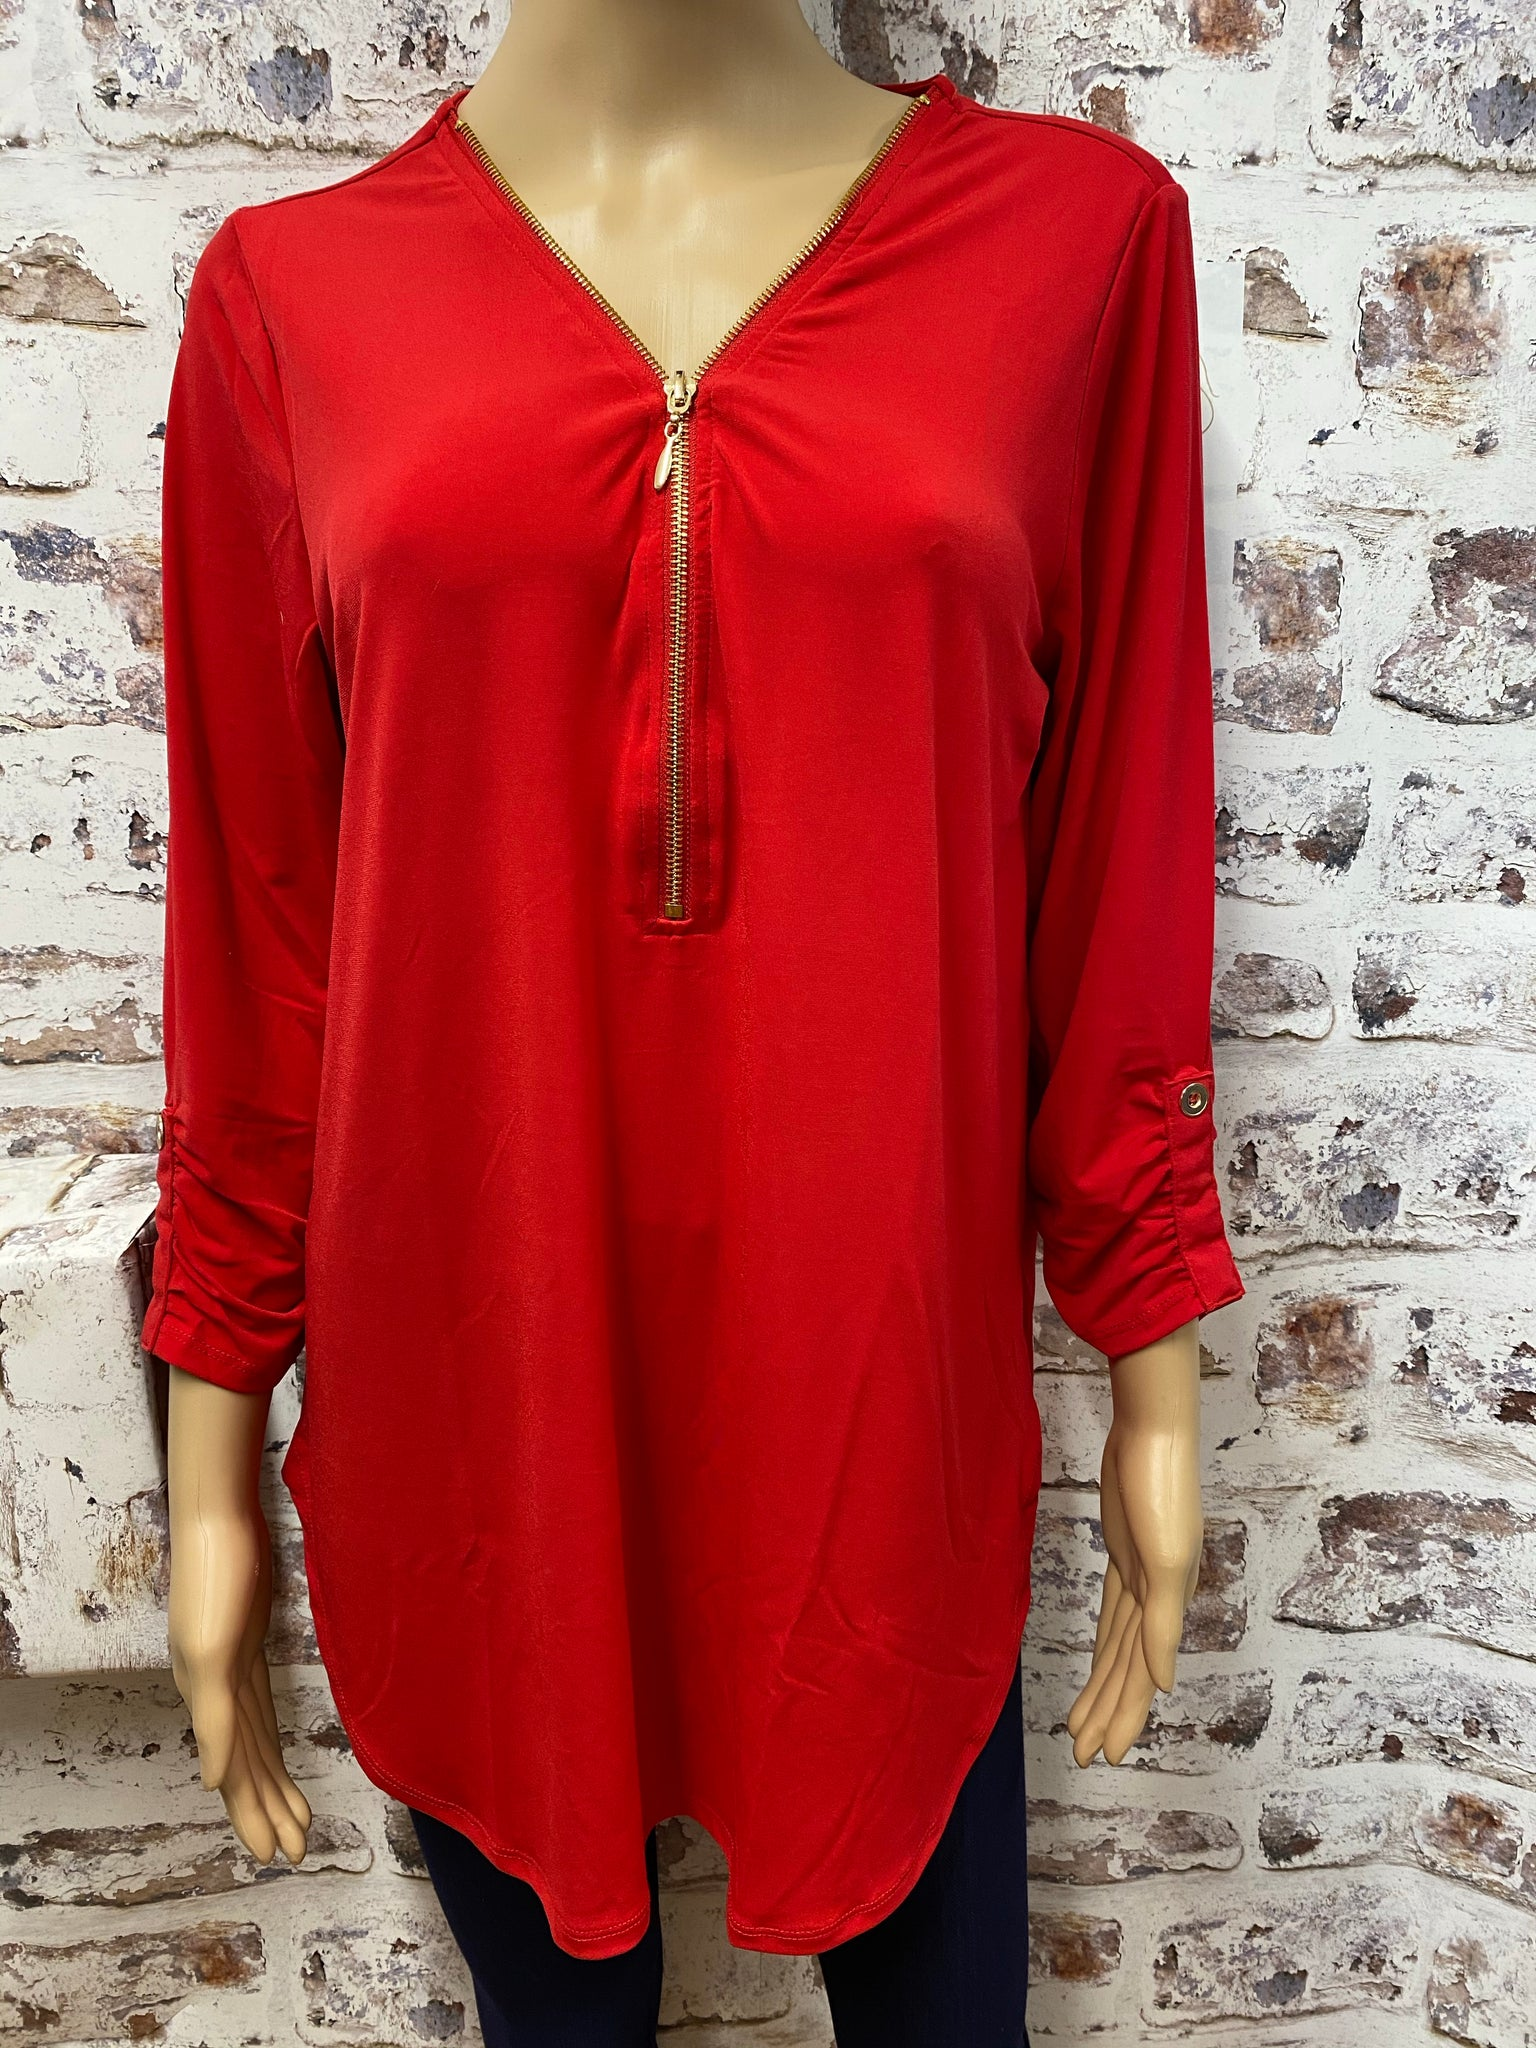 Red 3/4 Sleeve Top with Zipper Accent